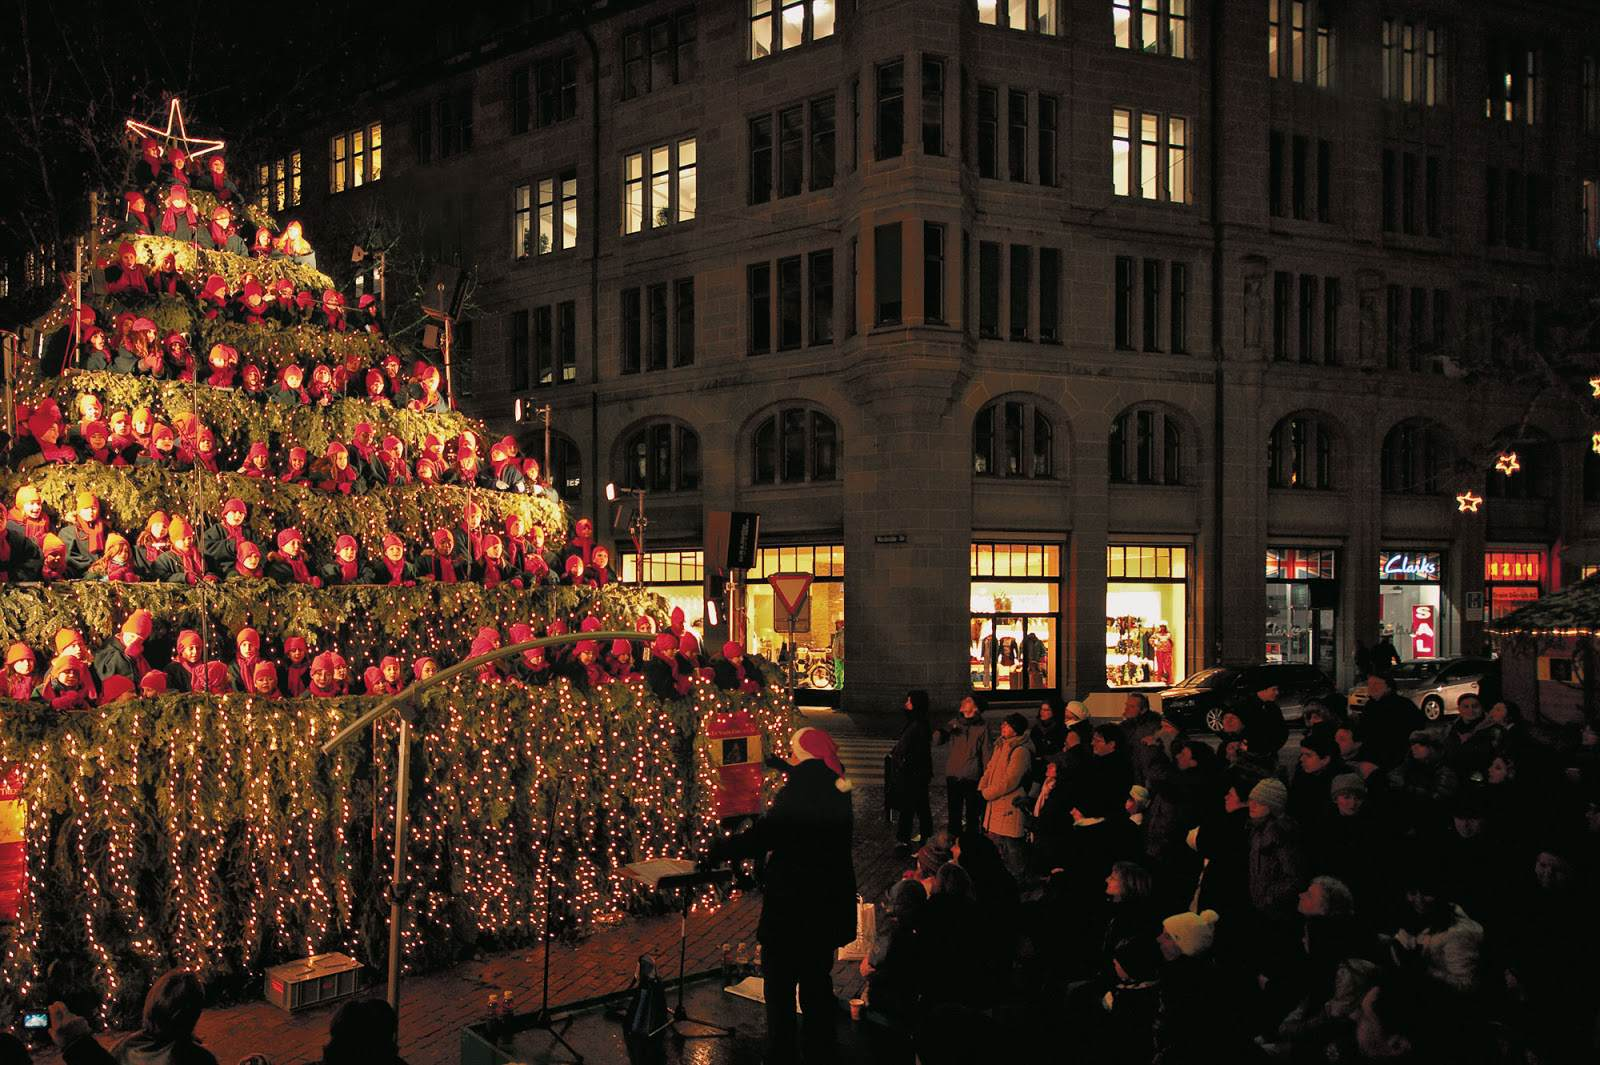 The_Singing_Christmas_Tree_Zuerich